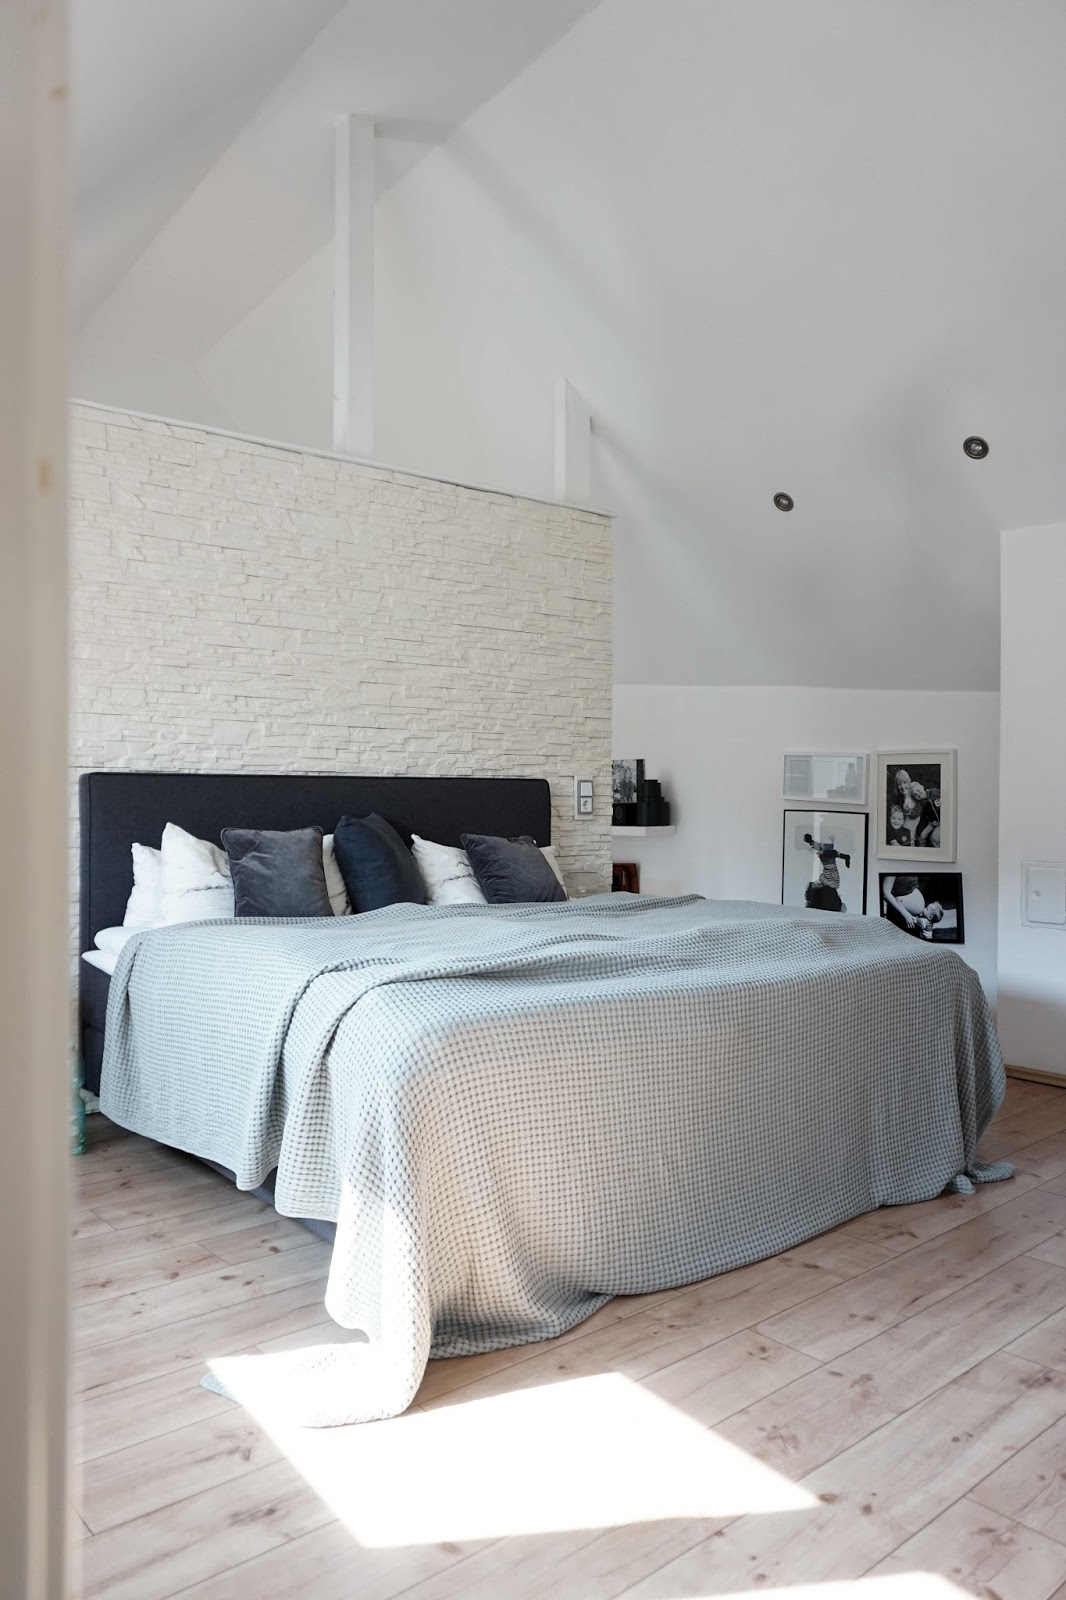 Marmor muster f rs schlafzimmer makeover s t i l r e i c h blog - Schlafzimmer muster ...